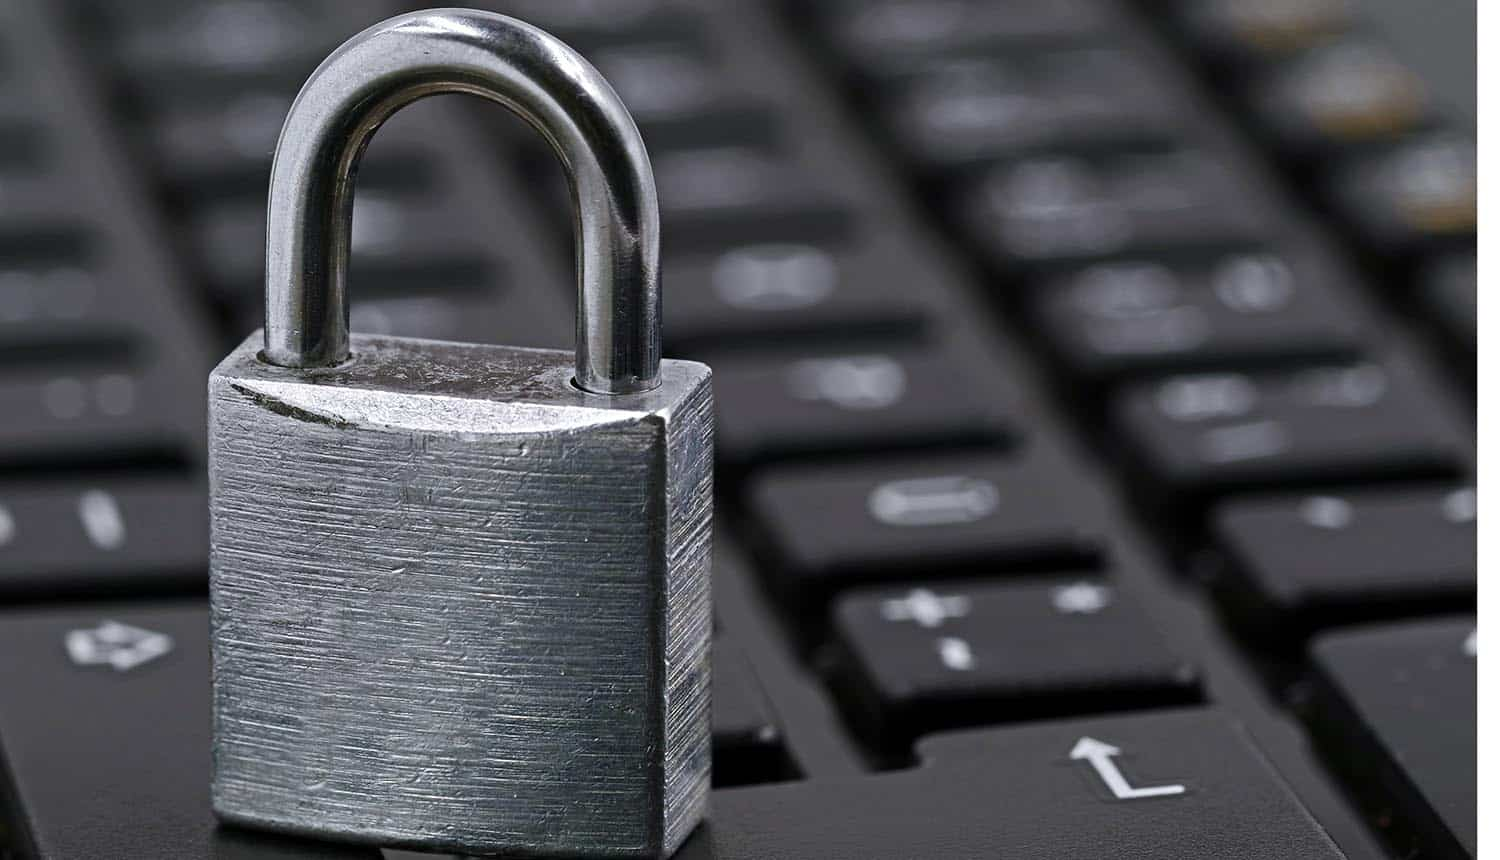 Padlock on keyboard showing the three reasons that stop companies from getting rid of passwords